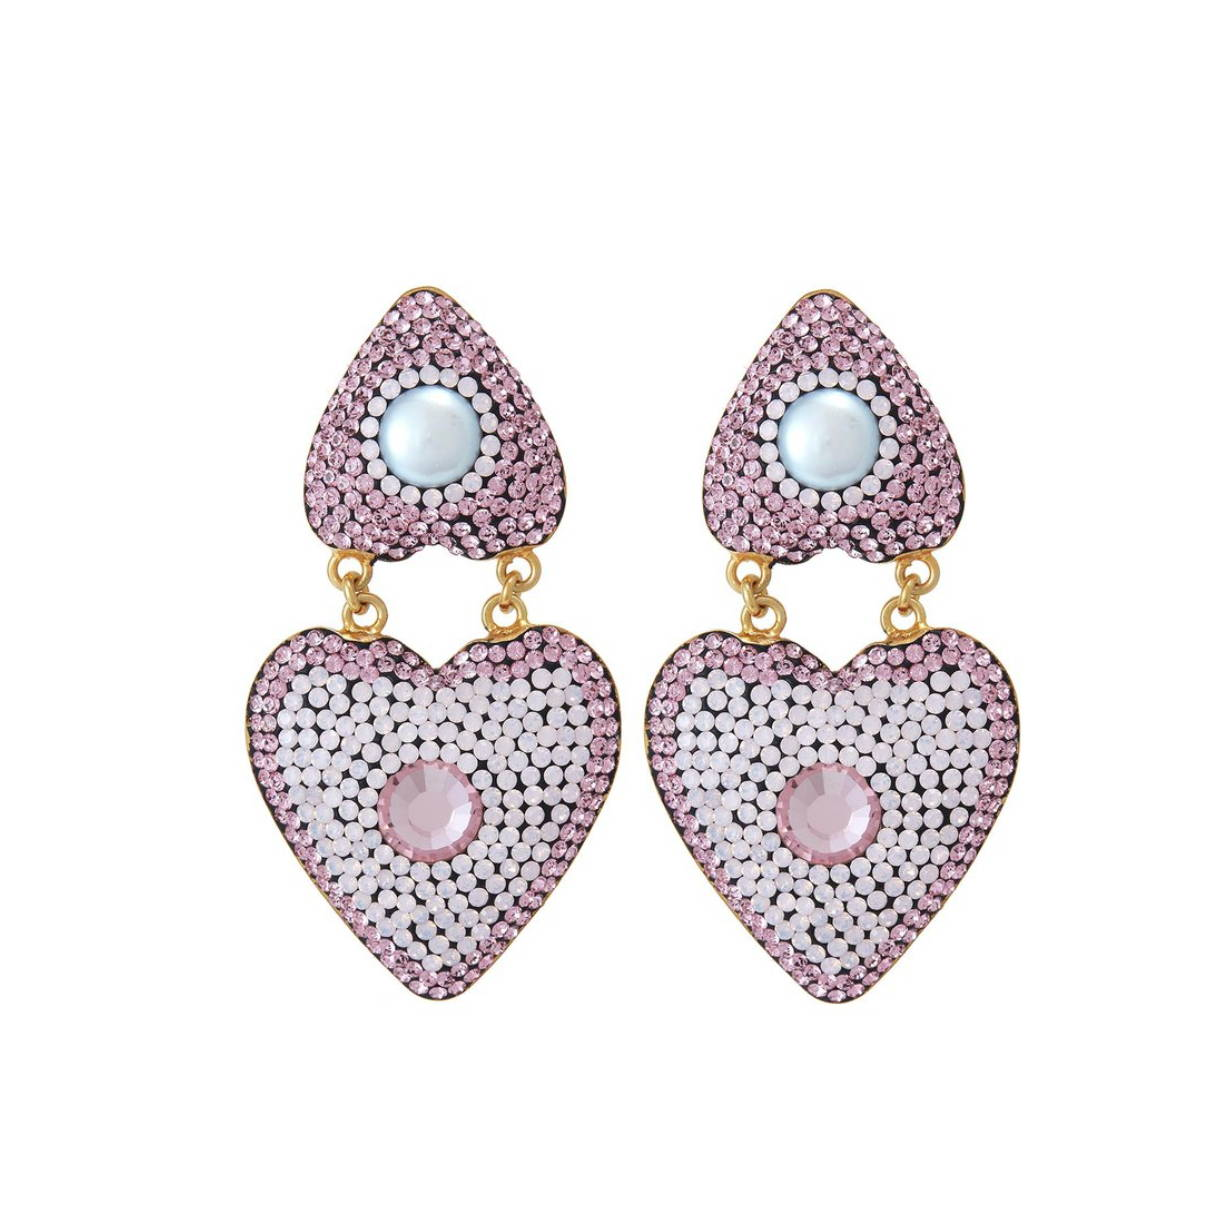 SORU JEWELLERY PINK DOUBLE HEART EARRINGS